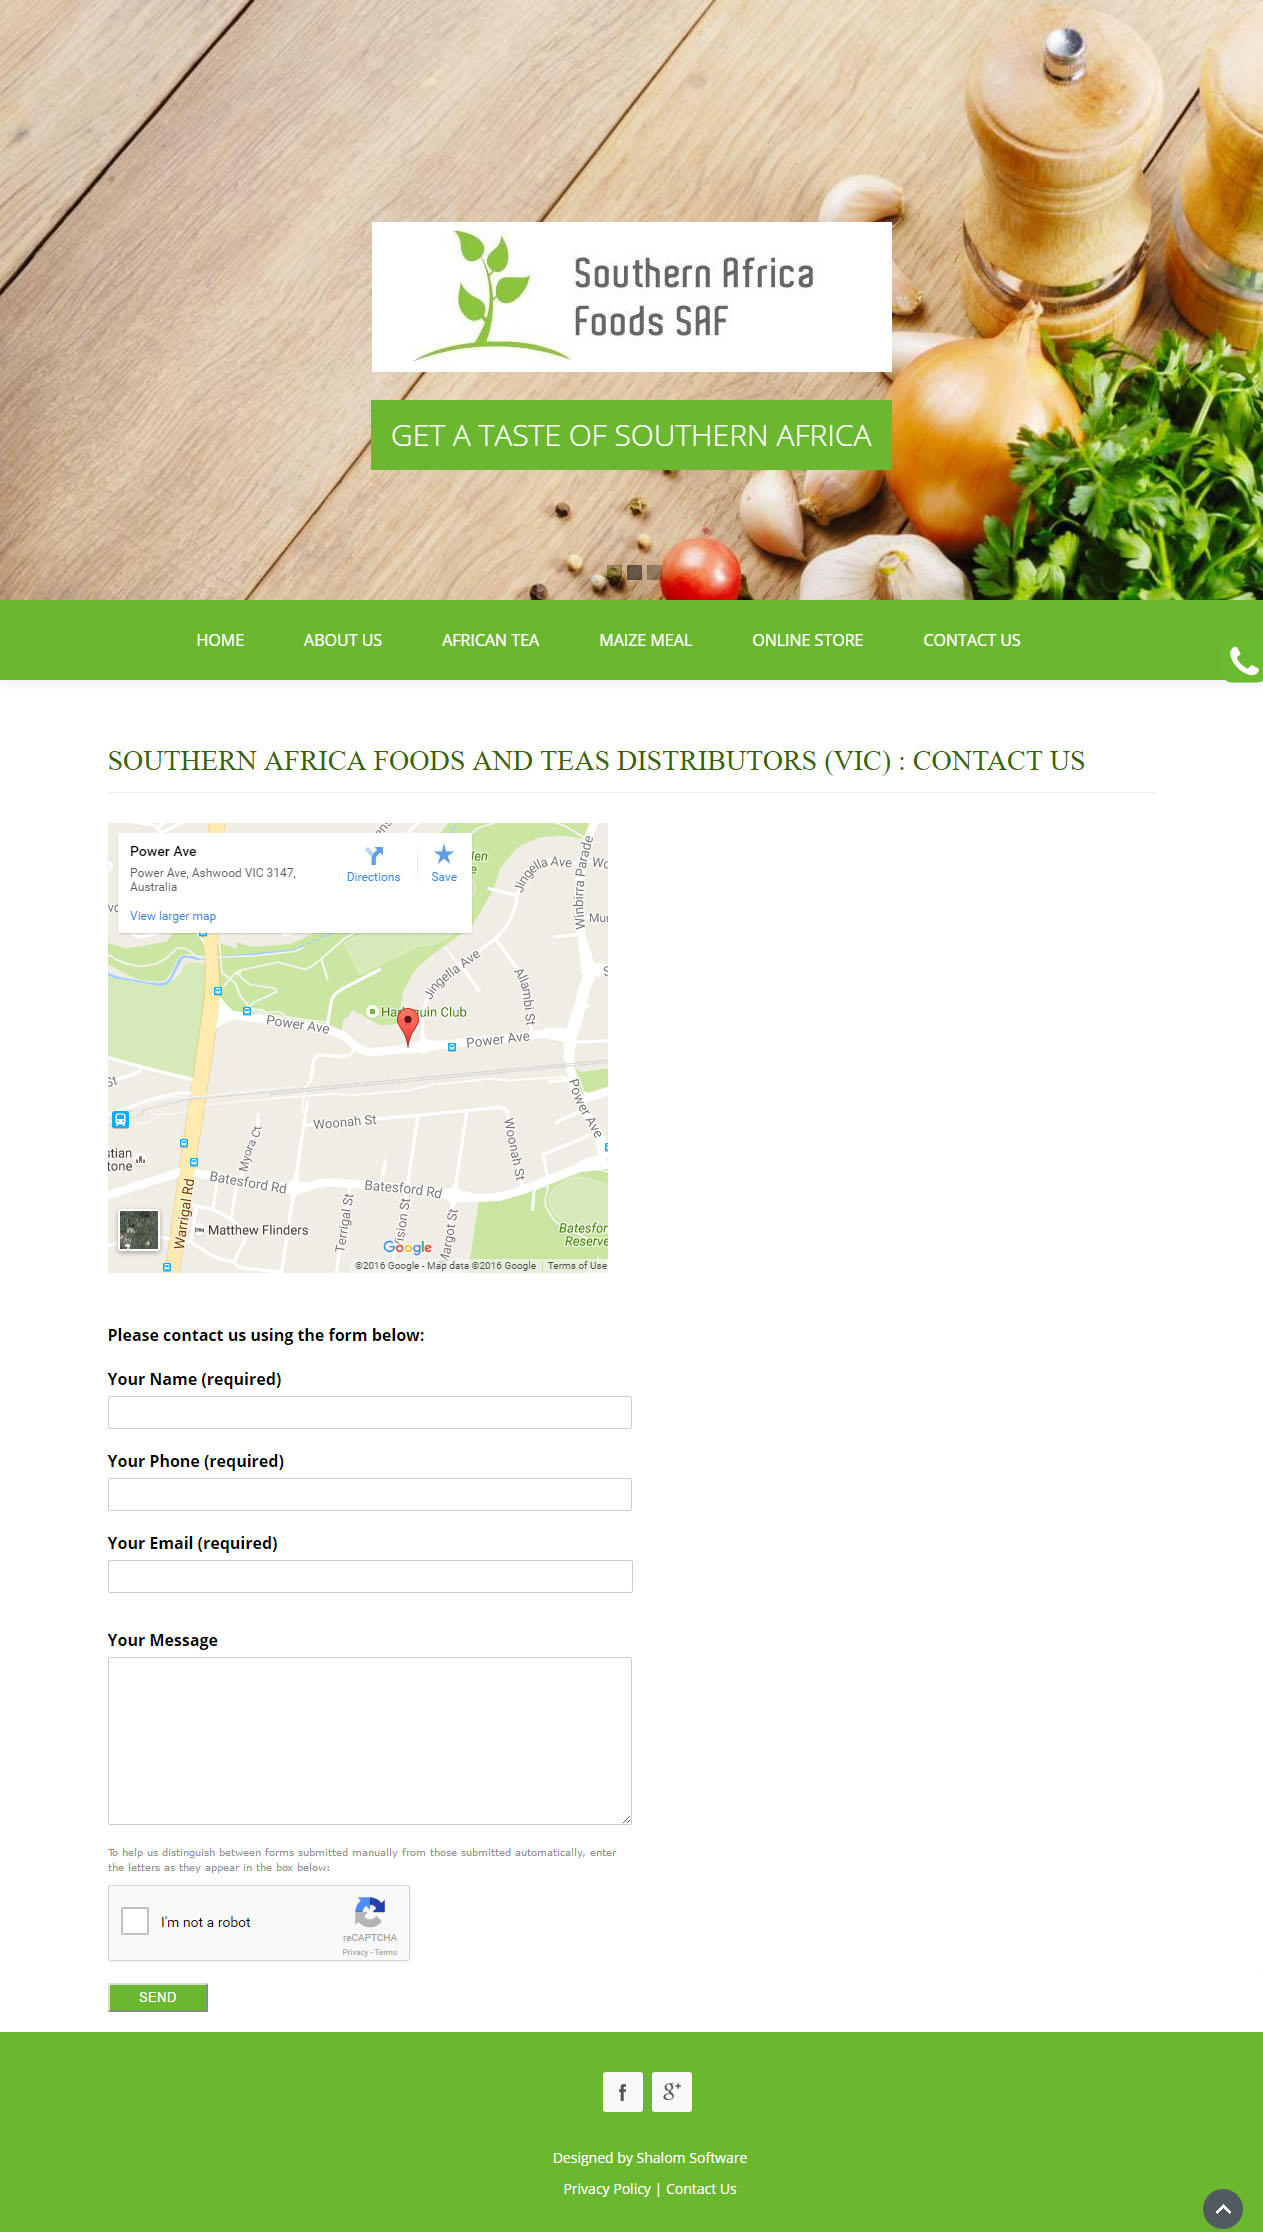 Southern Africa Foods Website Screenshot